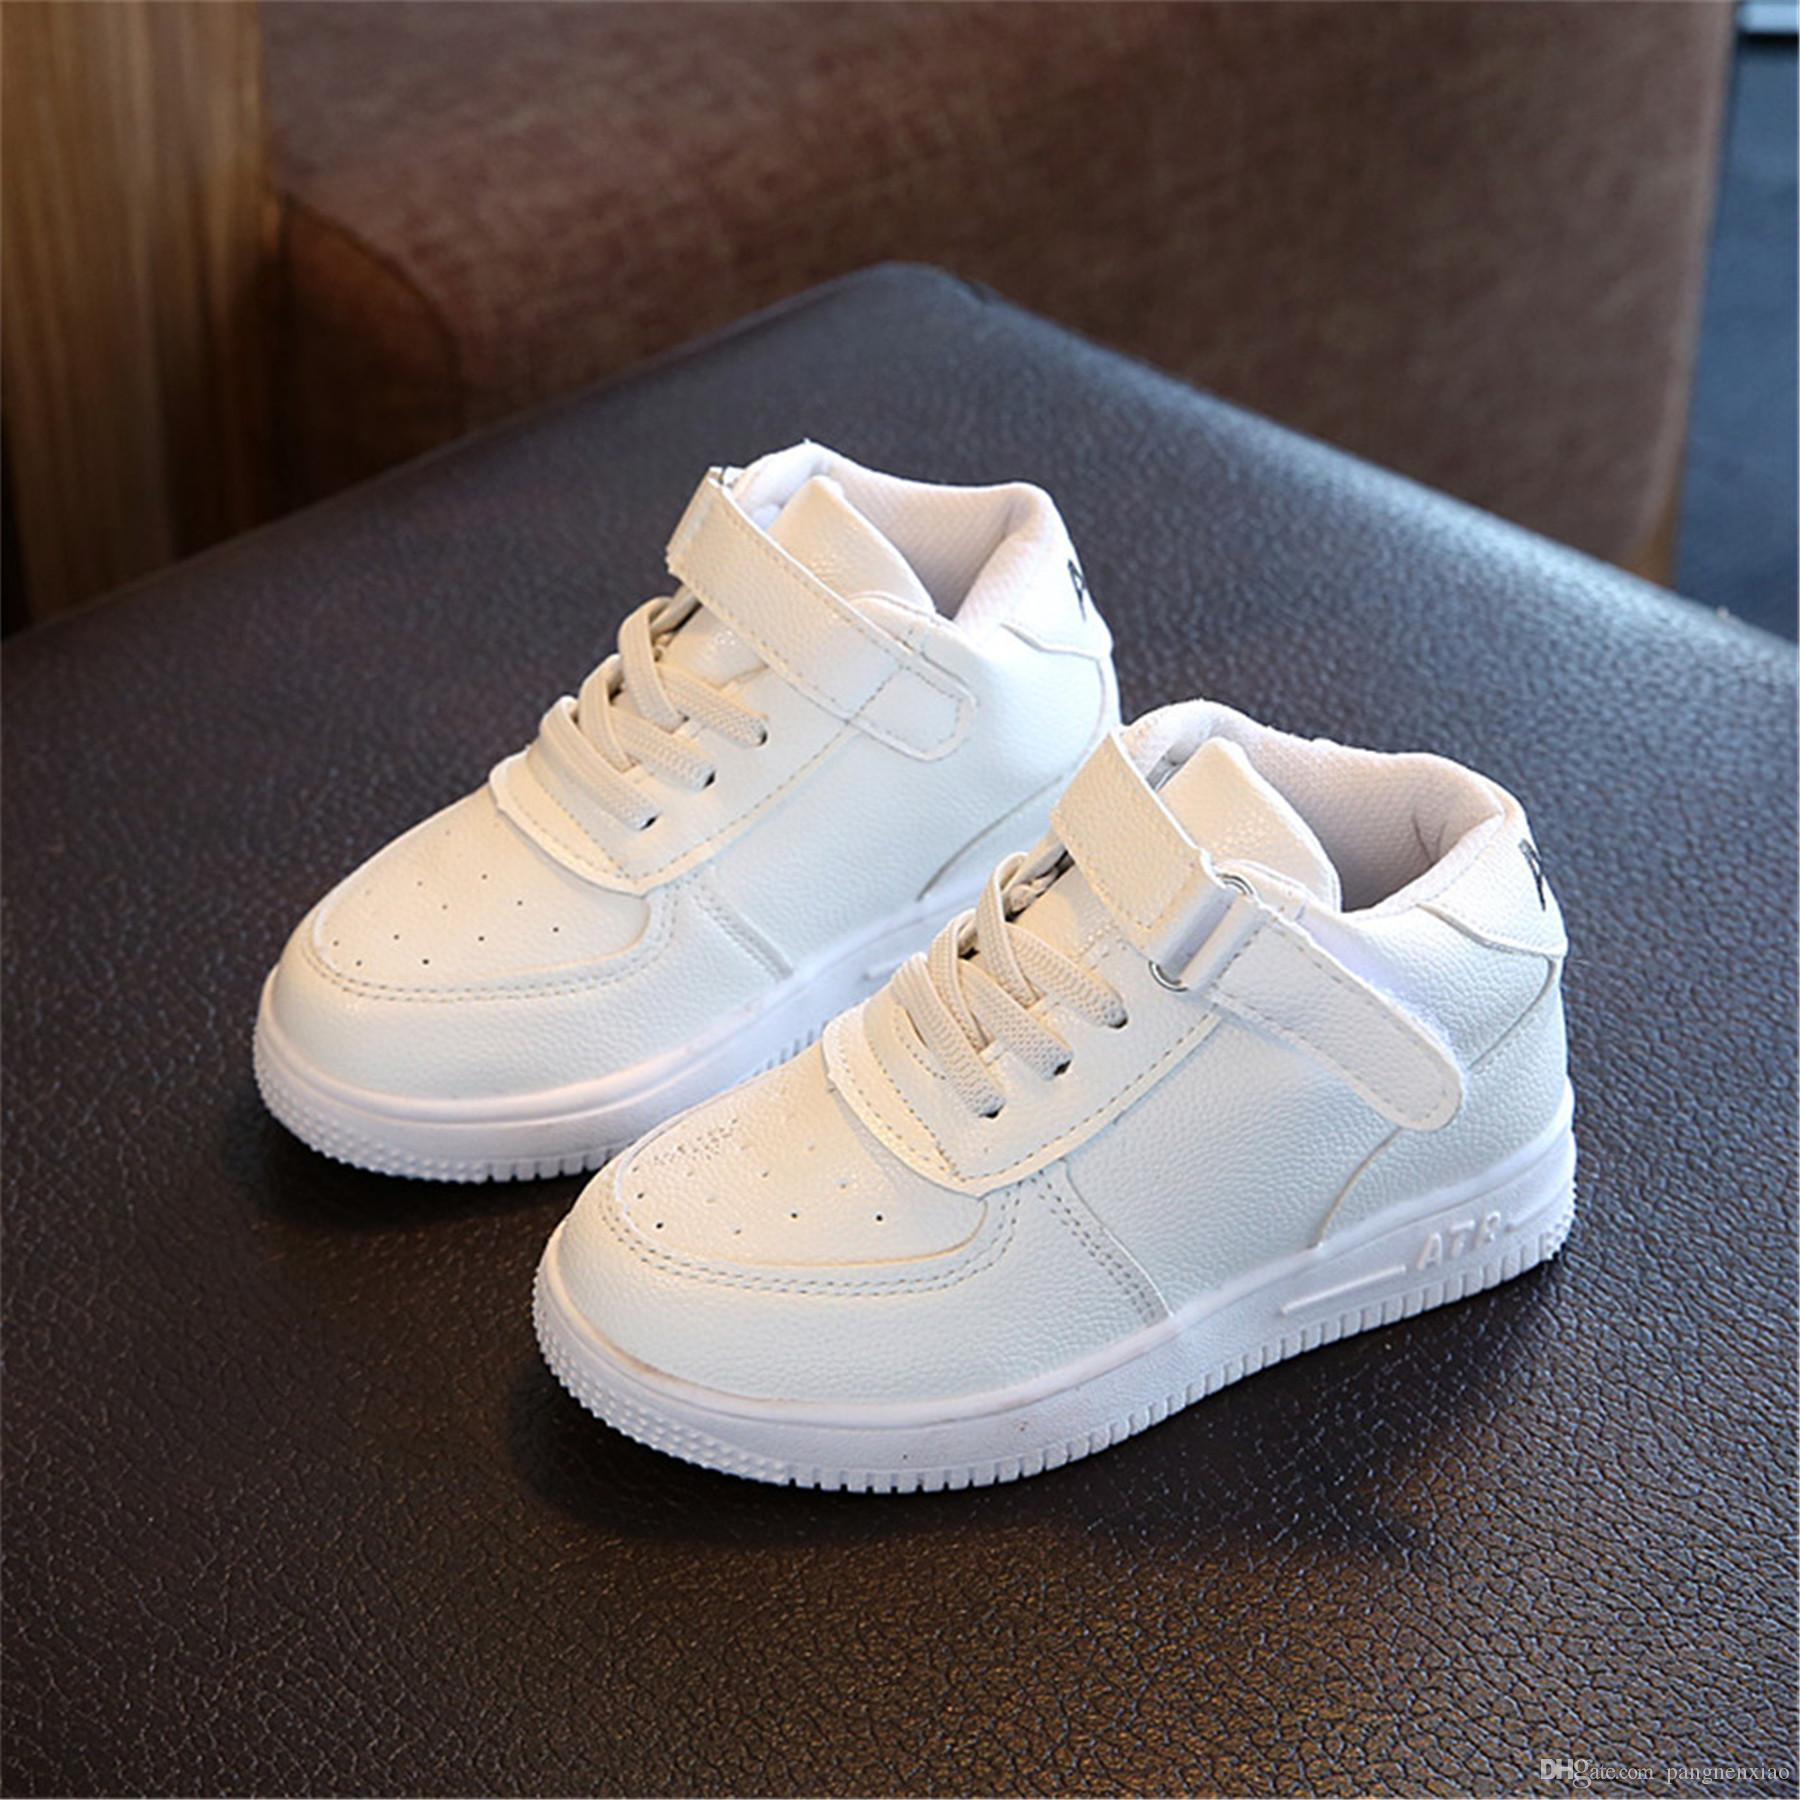 a40f4c6d2ad Chaussure Garcon Enfant Children S Shoes Kids Shoes Spring 2018 For Girls  Sneakers Boys Waterproof Leather Basketball Shoes Sports Running Best  Running ...